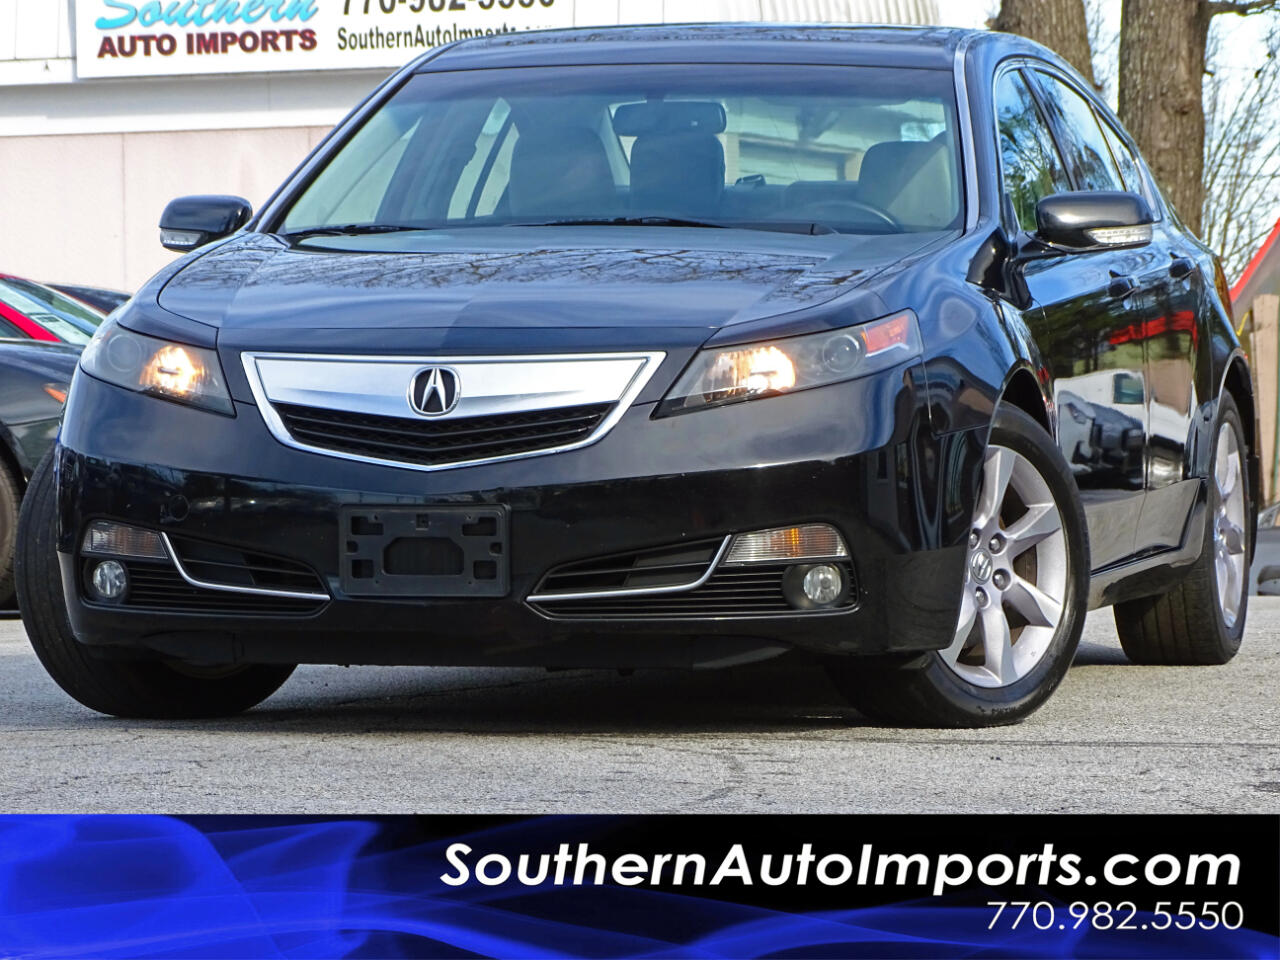 2013 Acura TL Tech Package w/Navigation 1owner